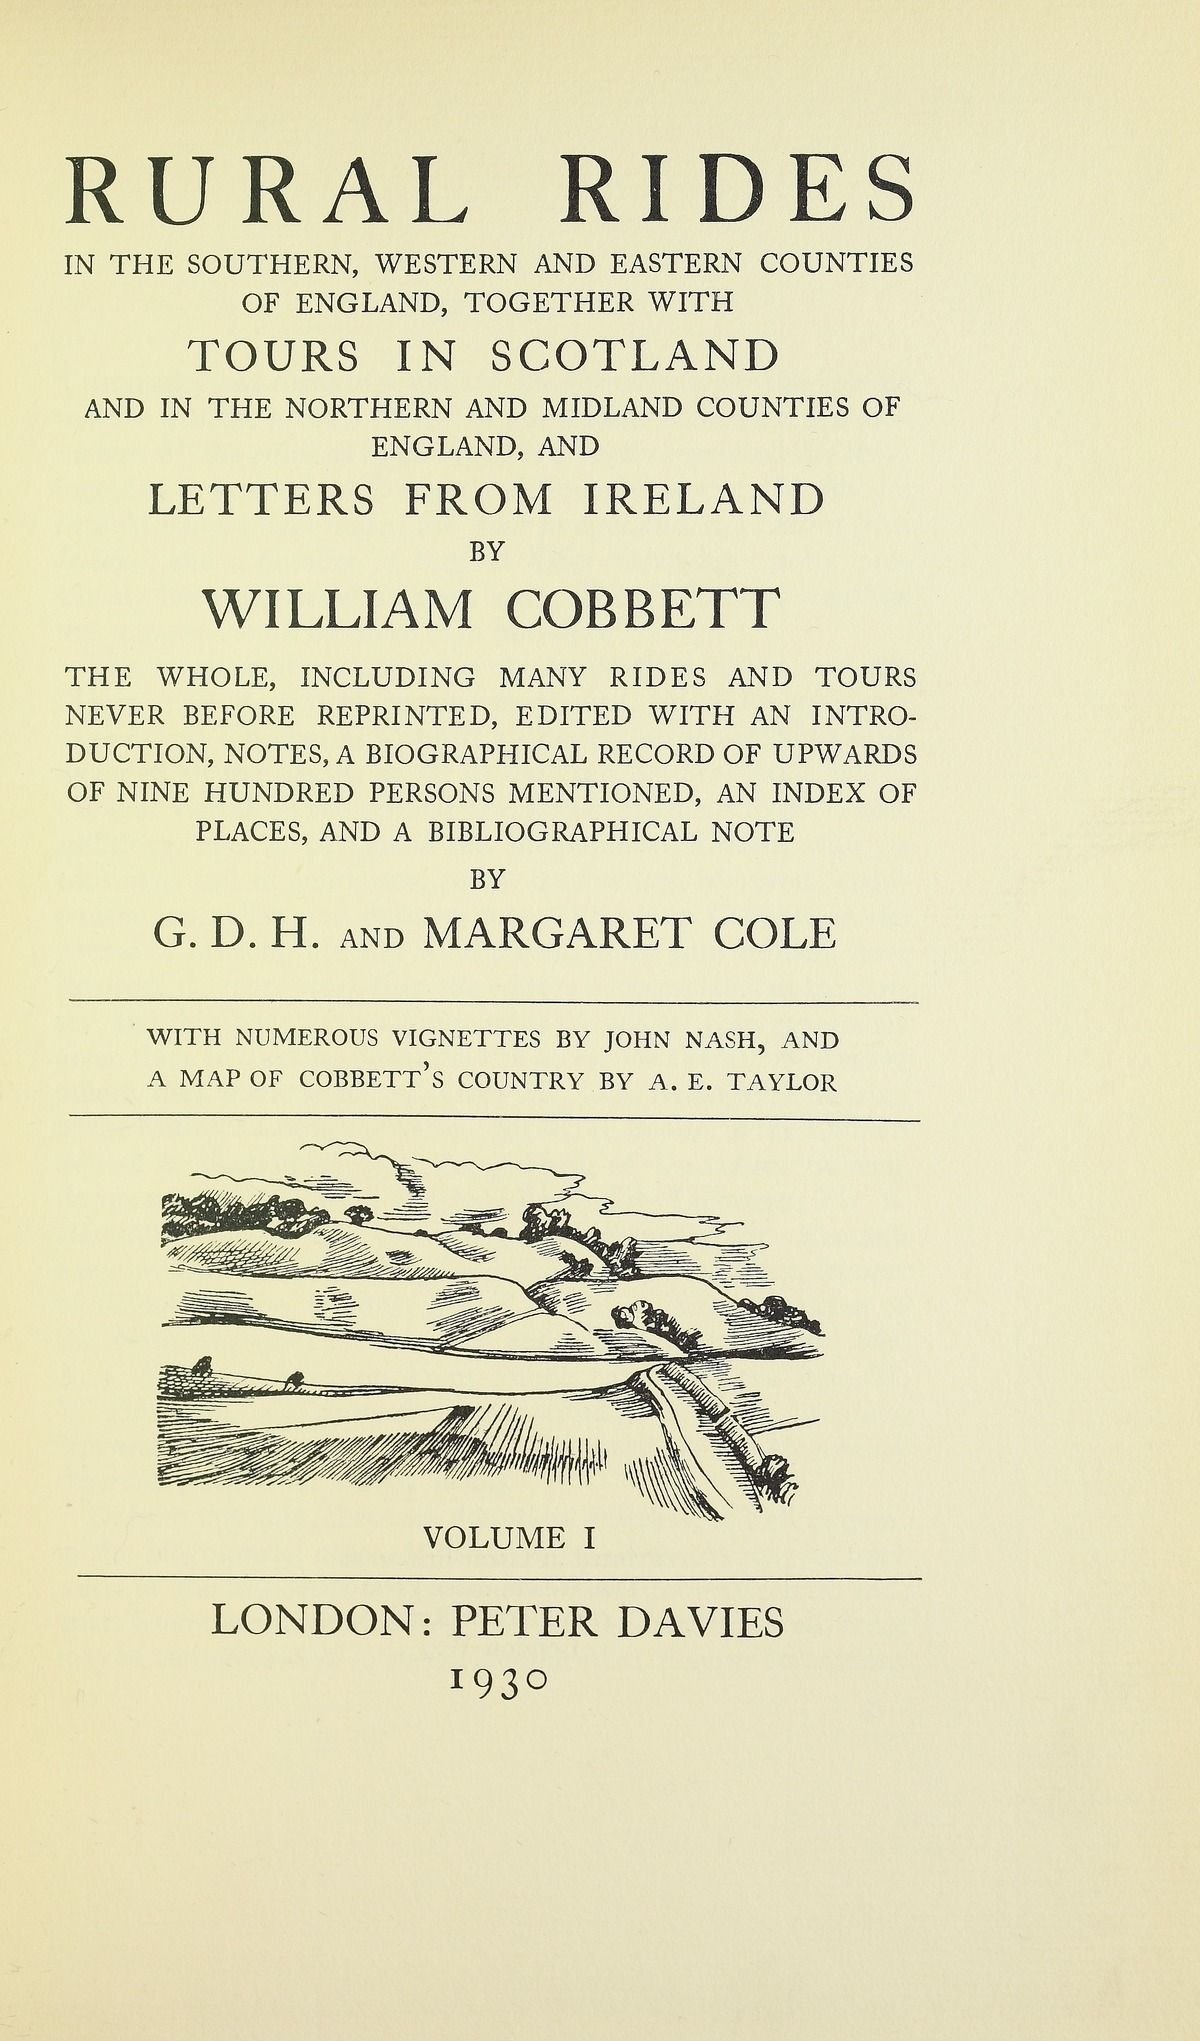 essays by william cobbett 1830 Between 1821 and 1836 william cobbett toured the southern english  countryside  published september 27th 2001 by penguin classics (first  published 1830.